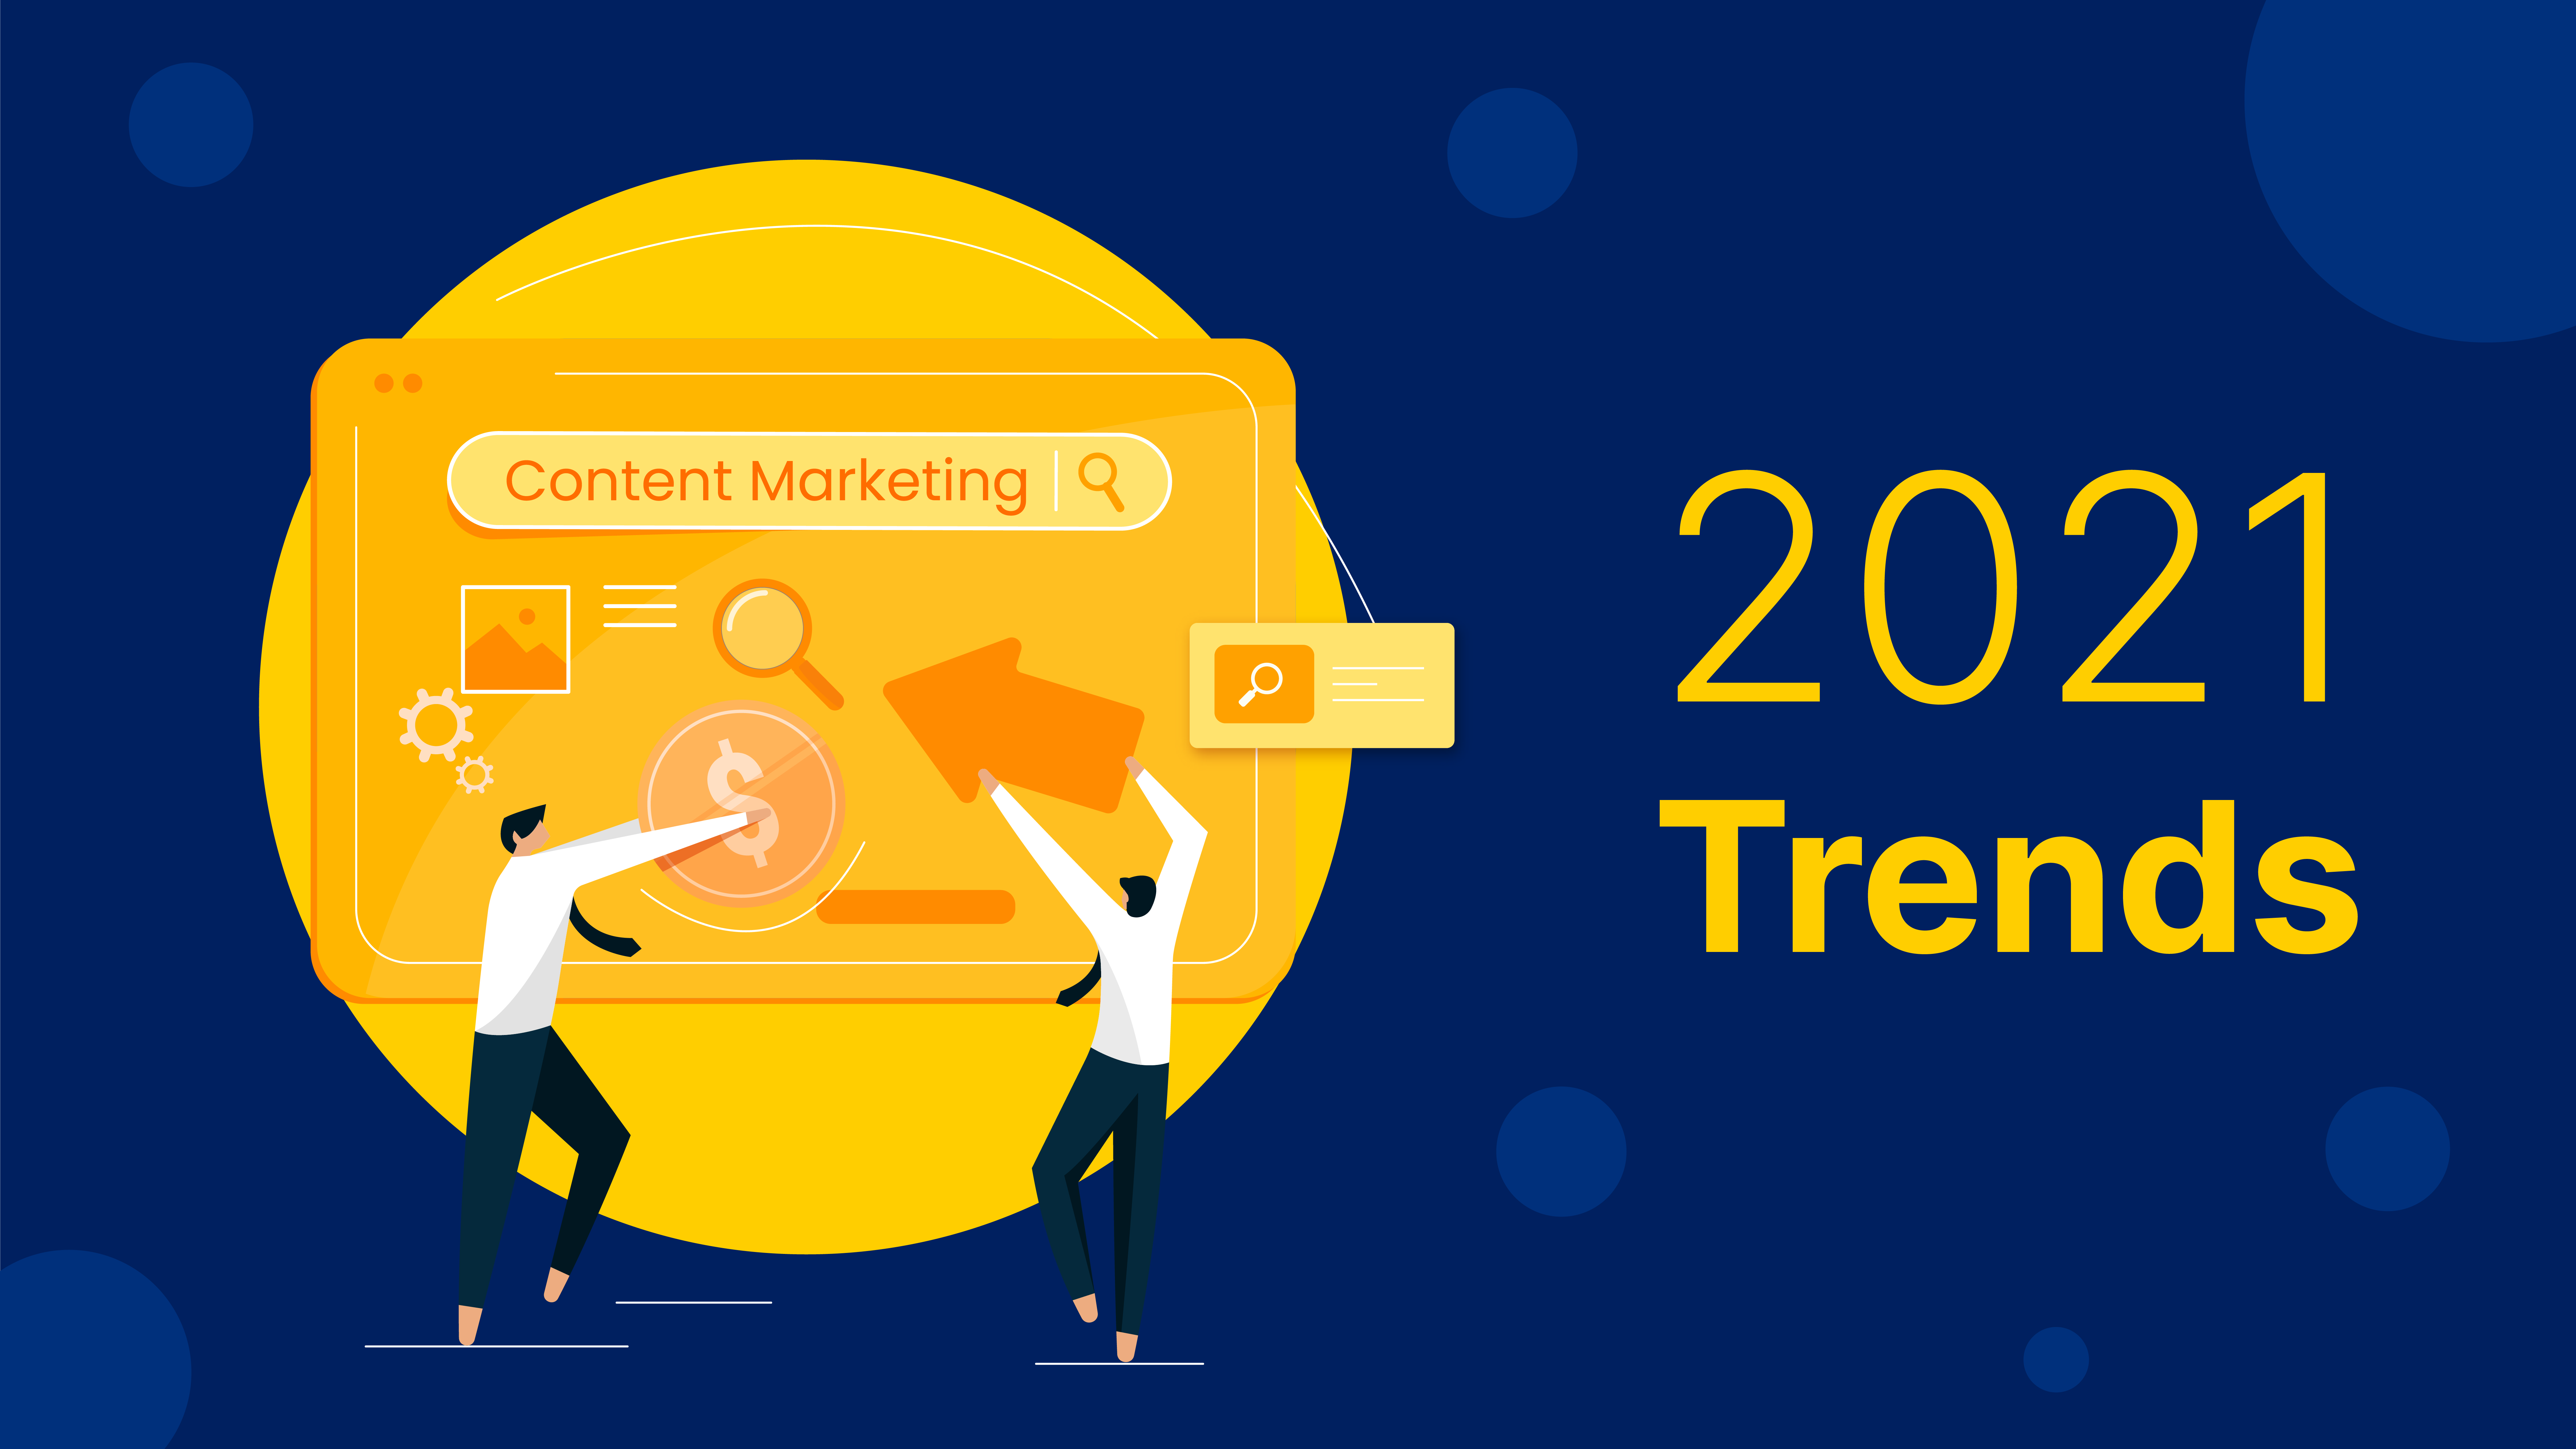 Content Marketing Trends in the post-COVID World